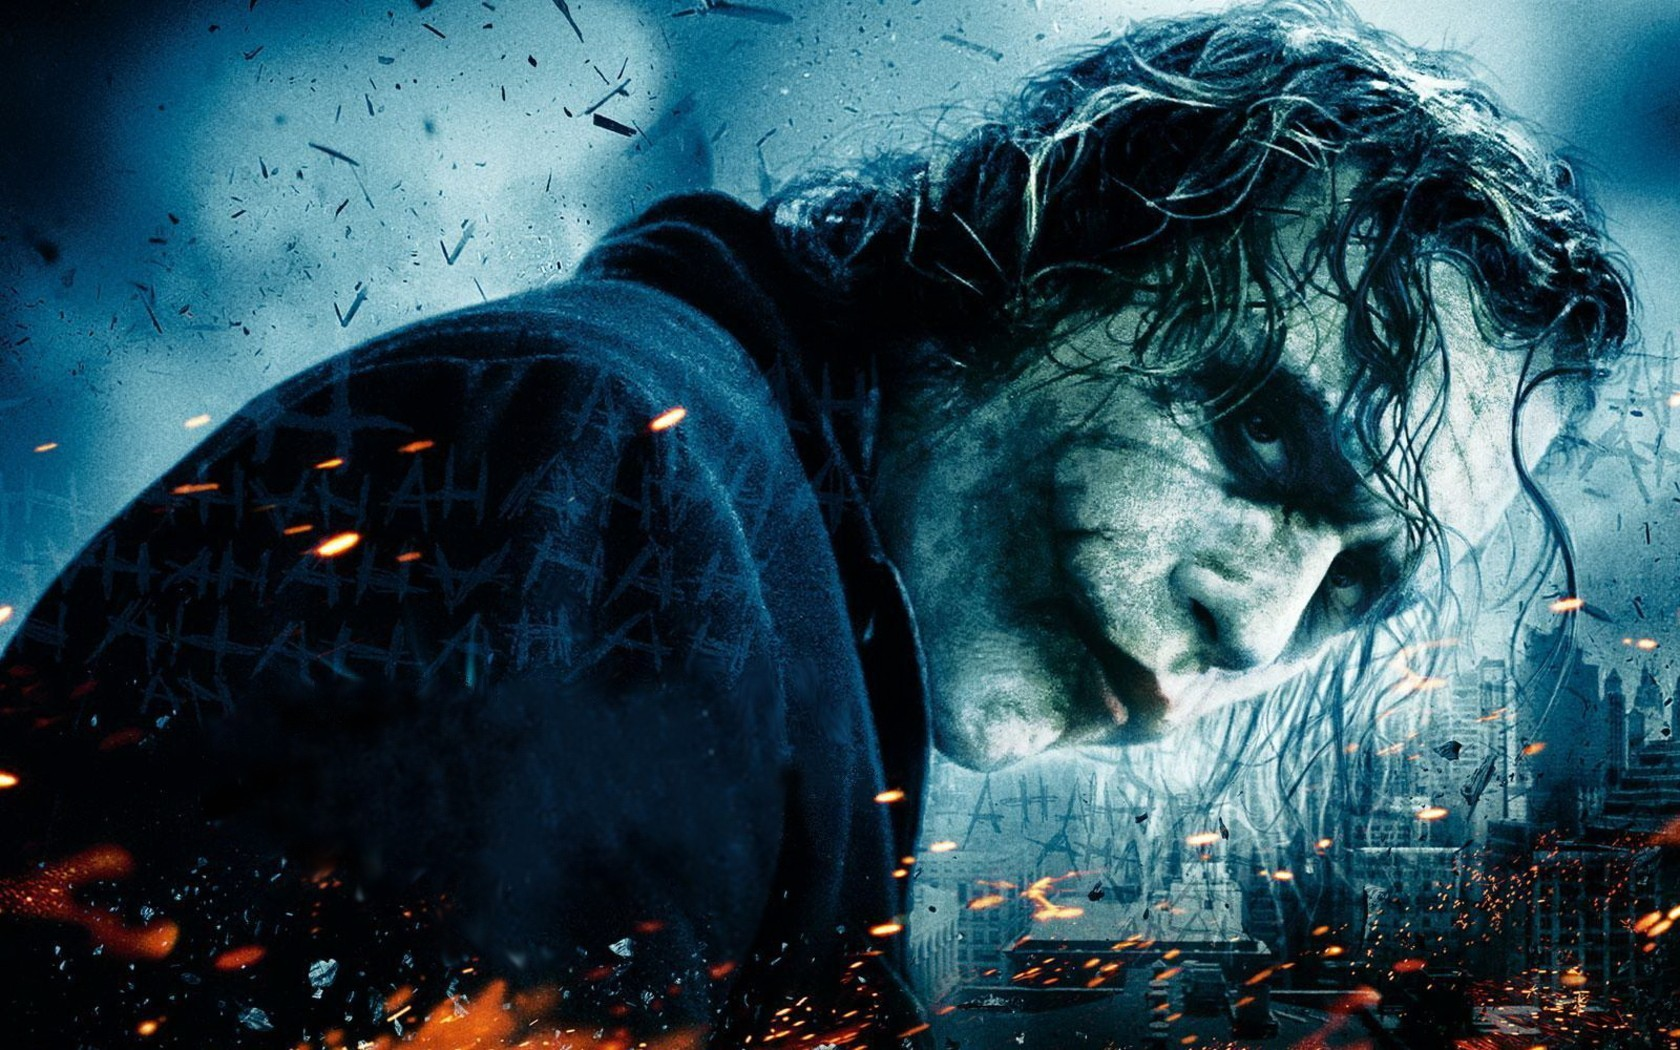 46+ HD Quality I Movie Images, I Movie Wallpapers HD Base